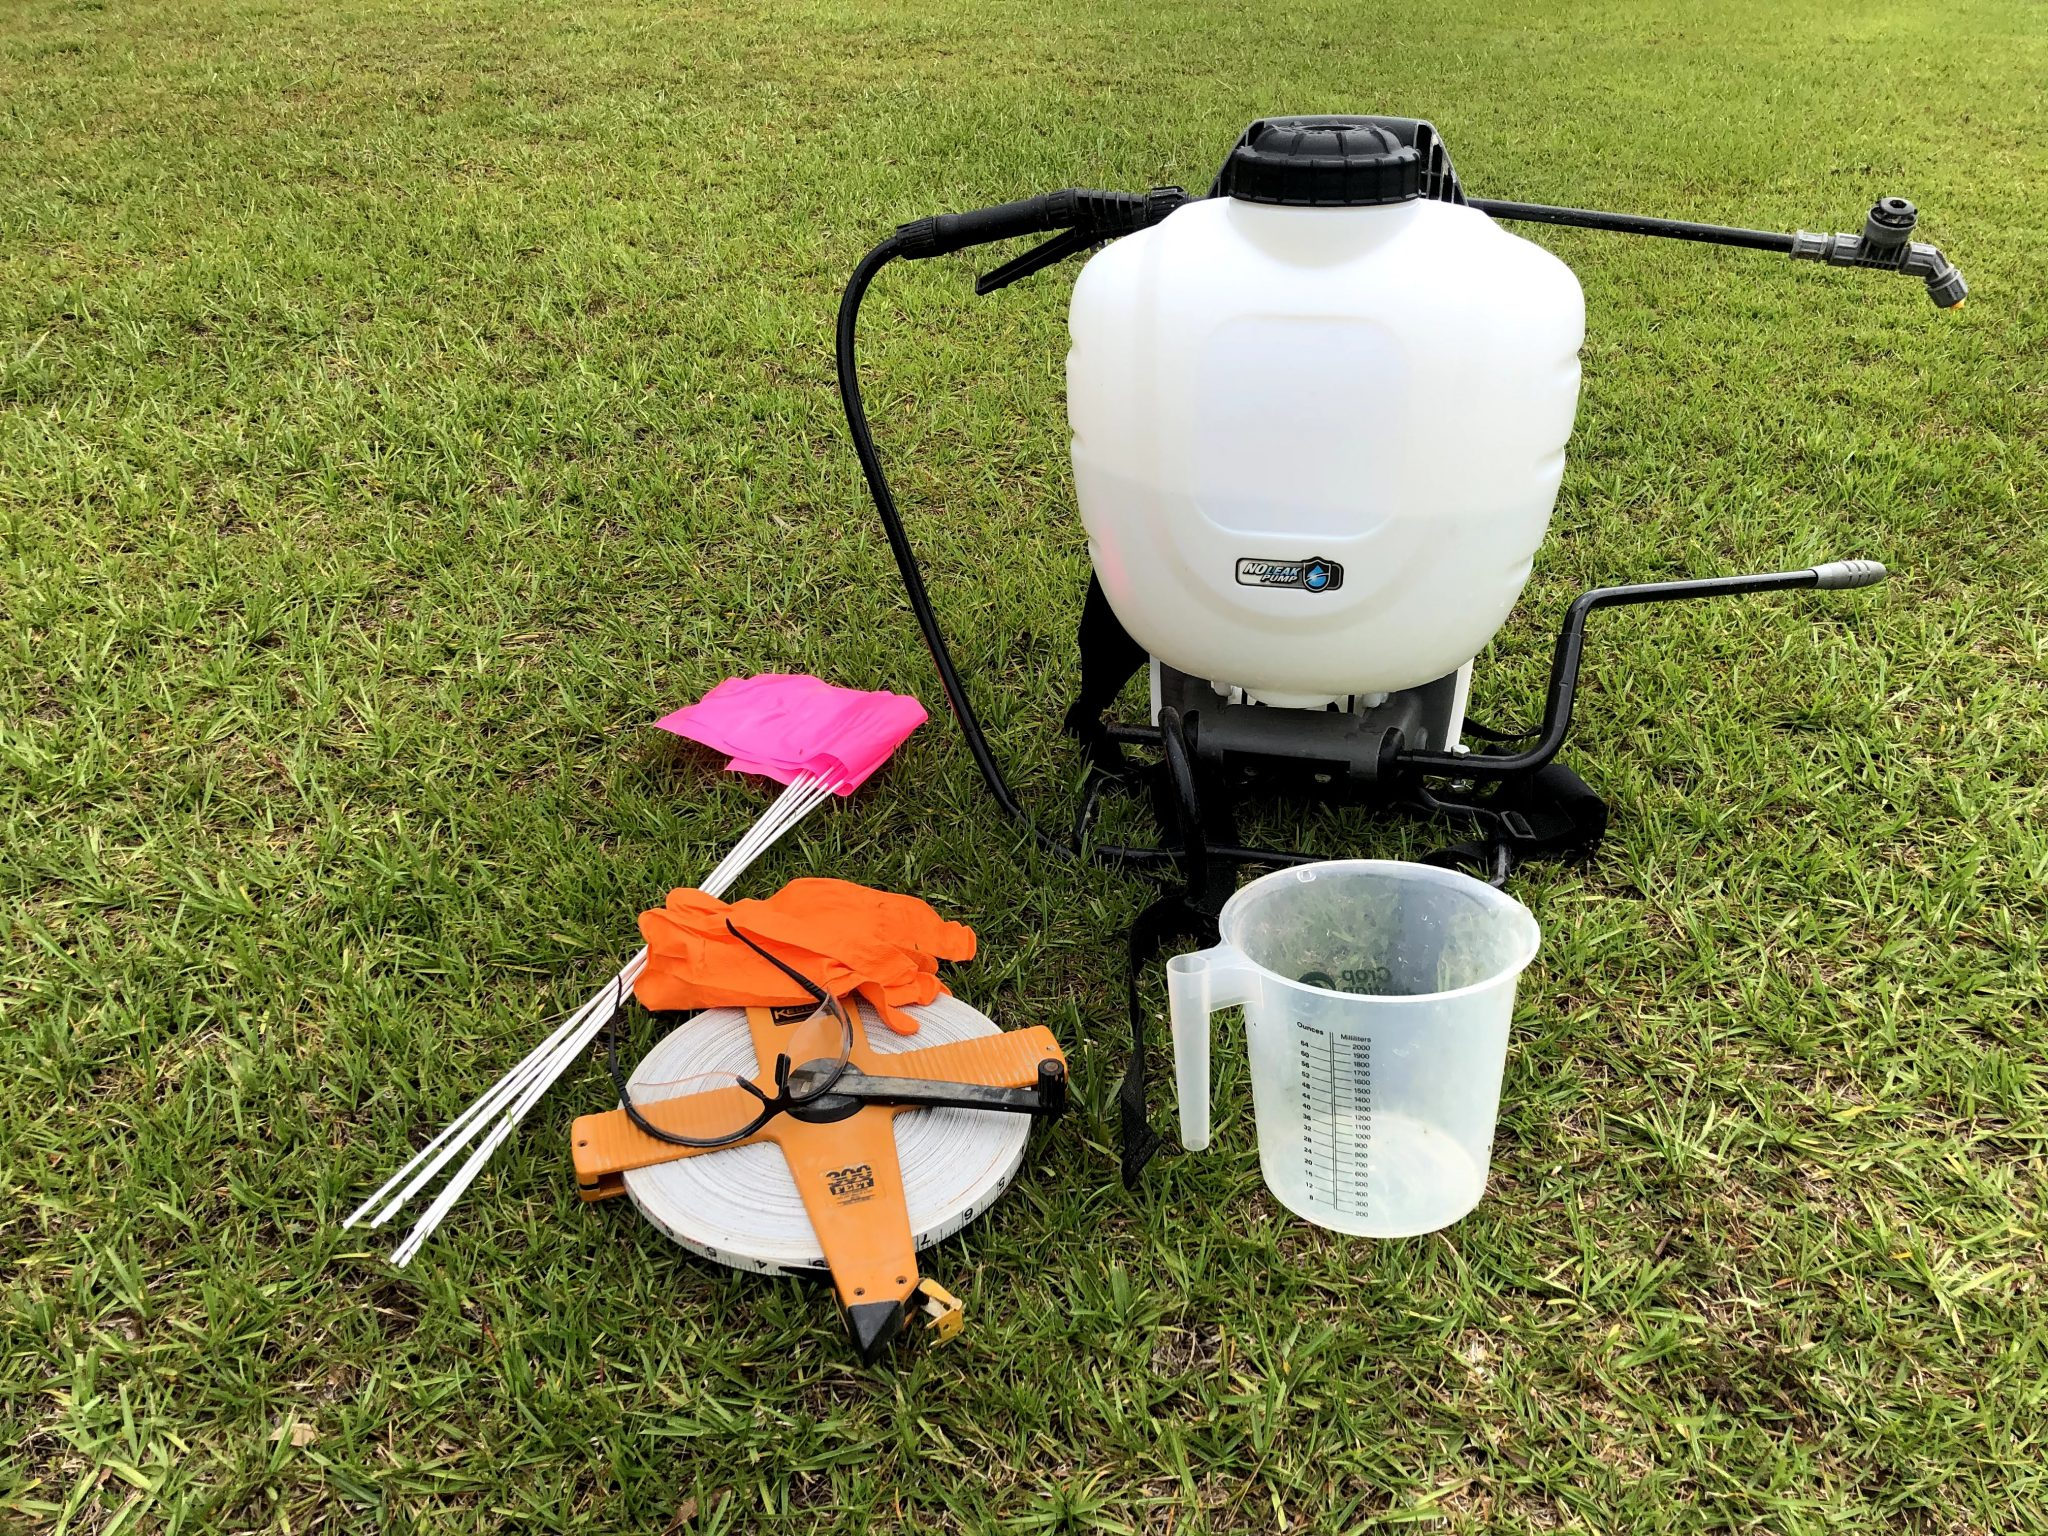 Figure 1. Tools needed to properly calibrate a backpack sprayer